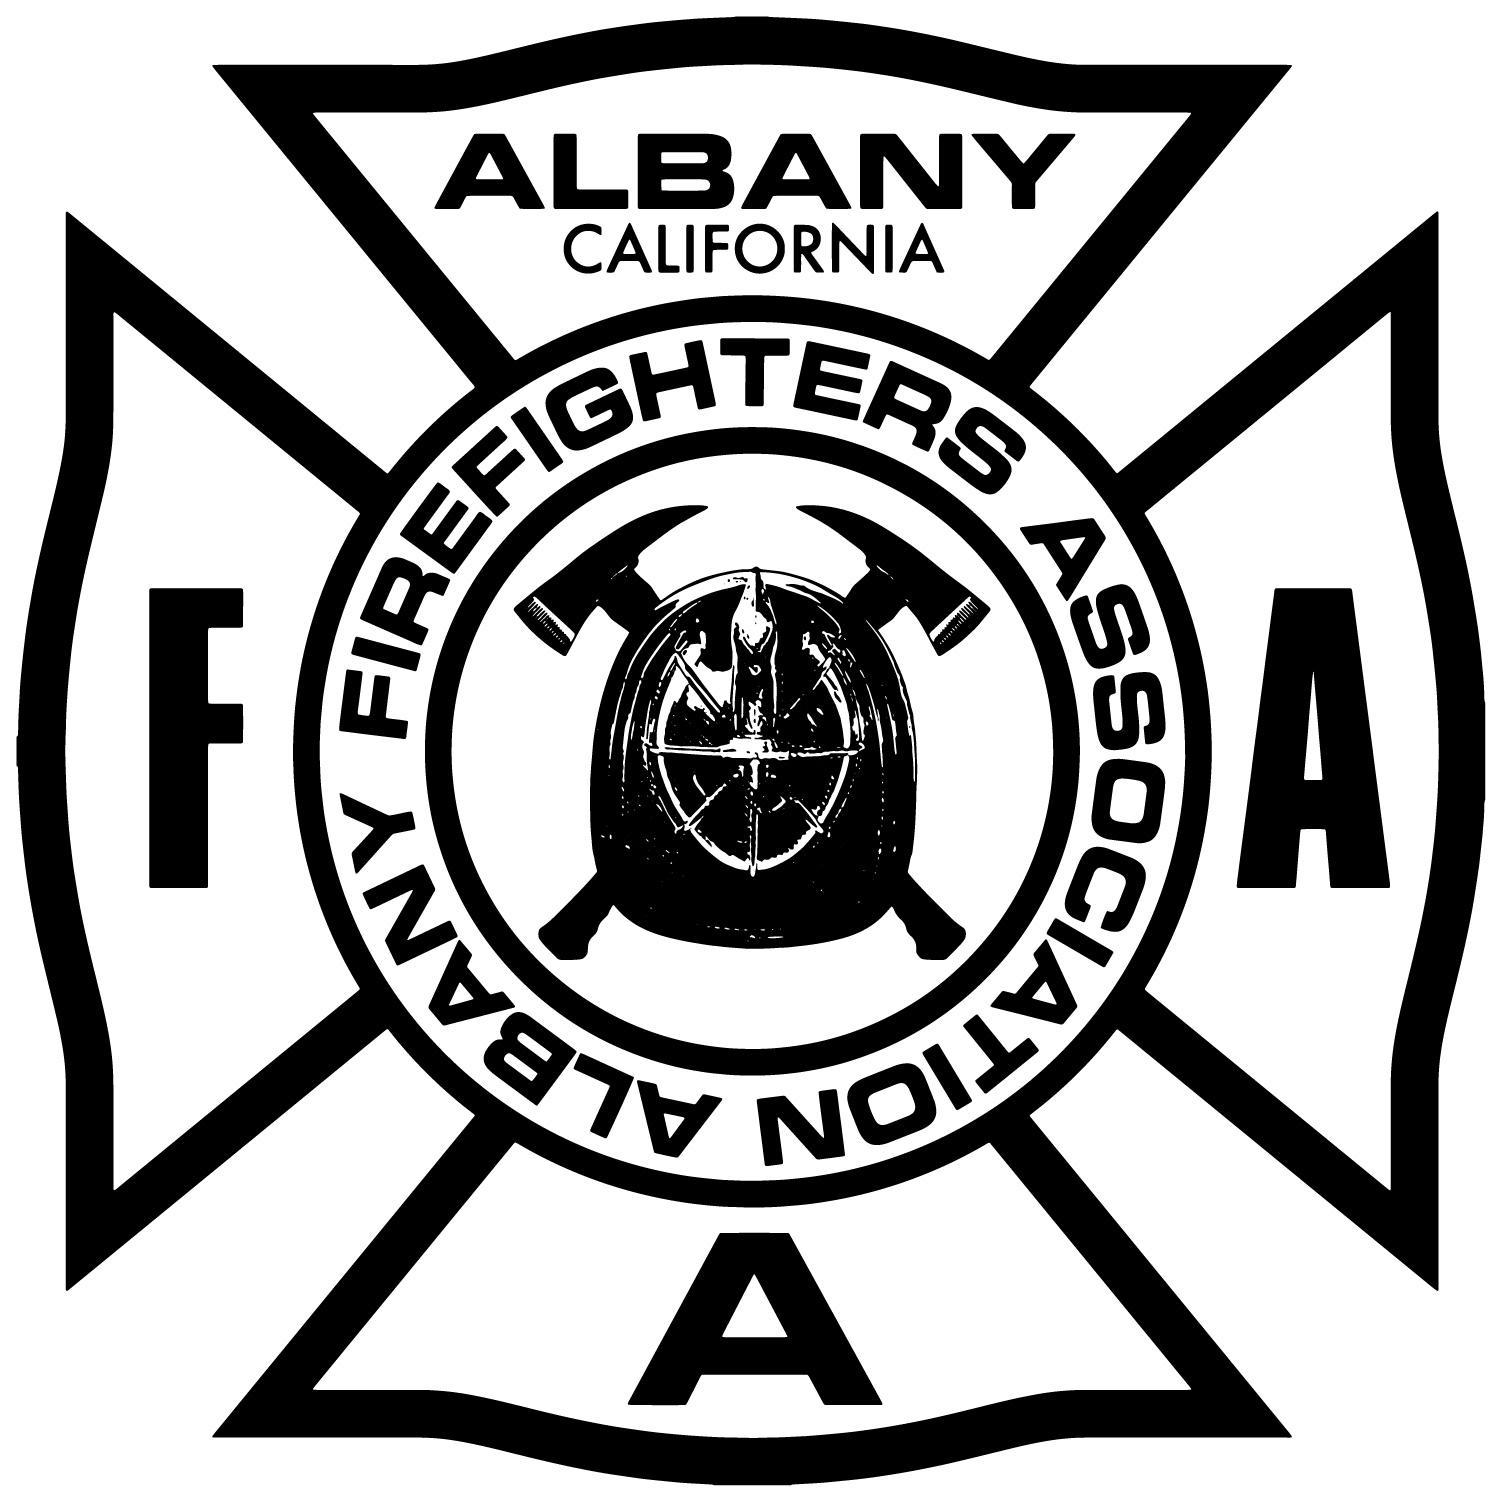 Albany firefighters association logo design mark reategui design albany firefigherslogo buycottarizona Choice Image